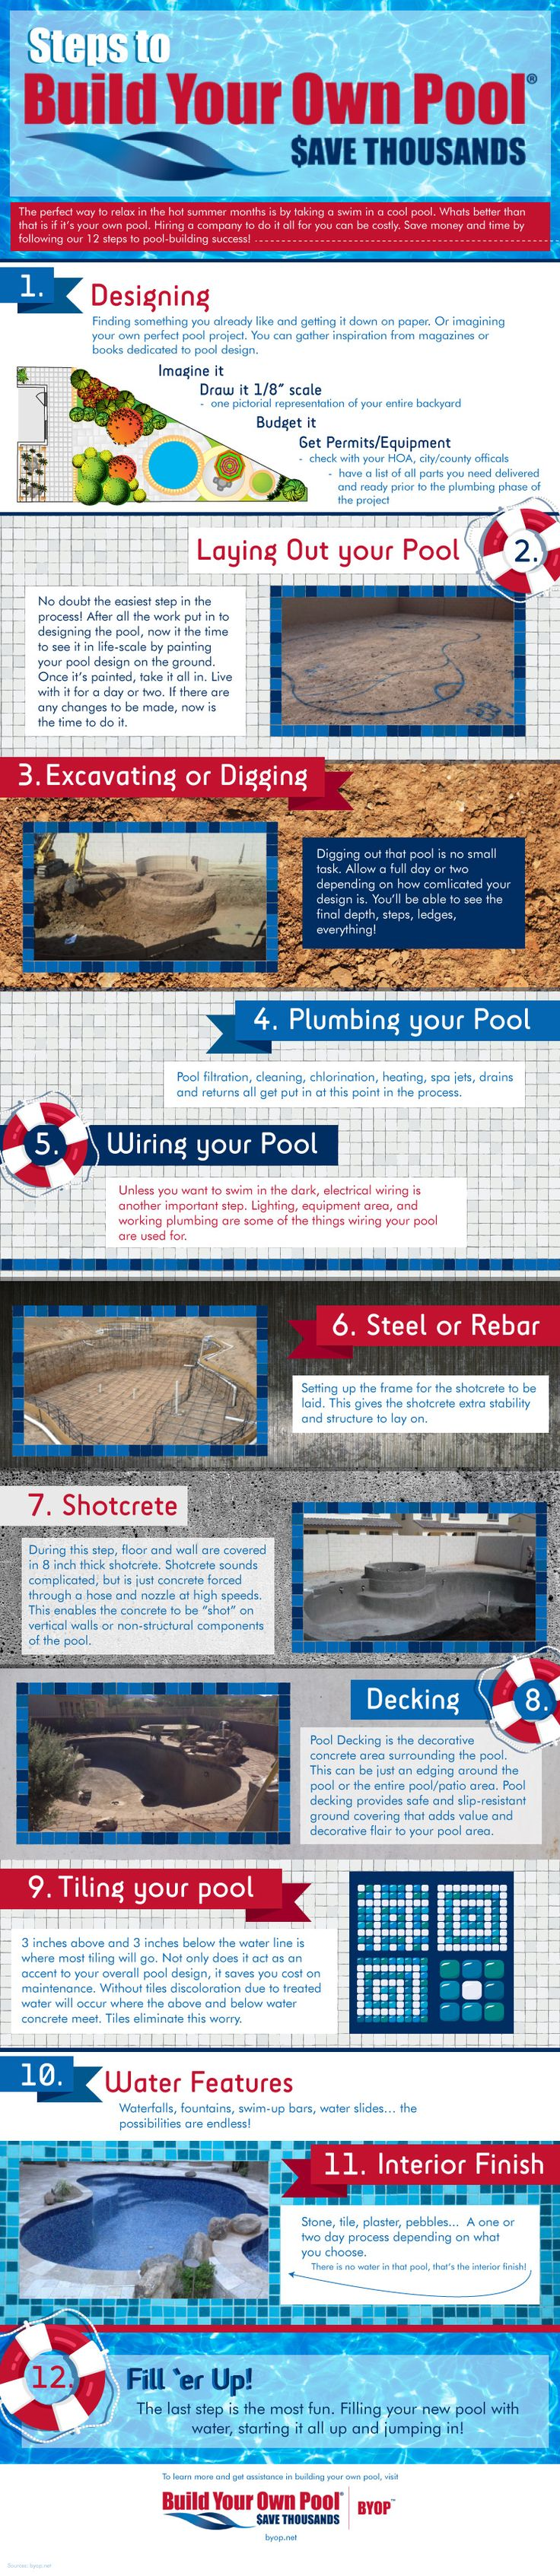 Steps to Build your Own Pool Infographic